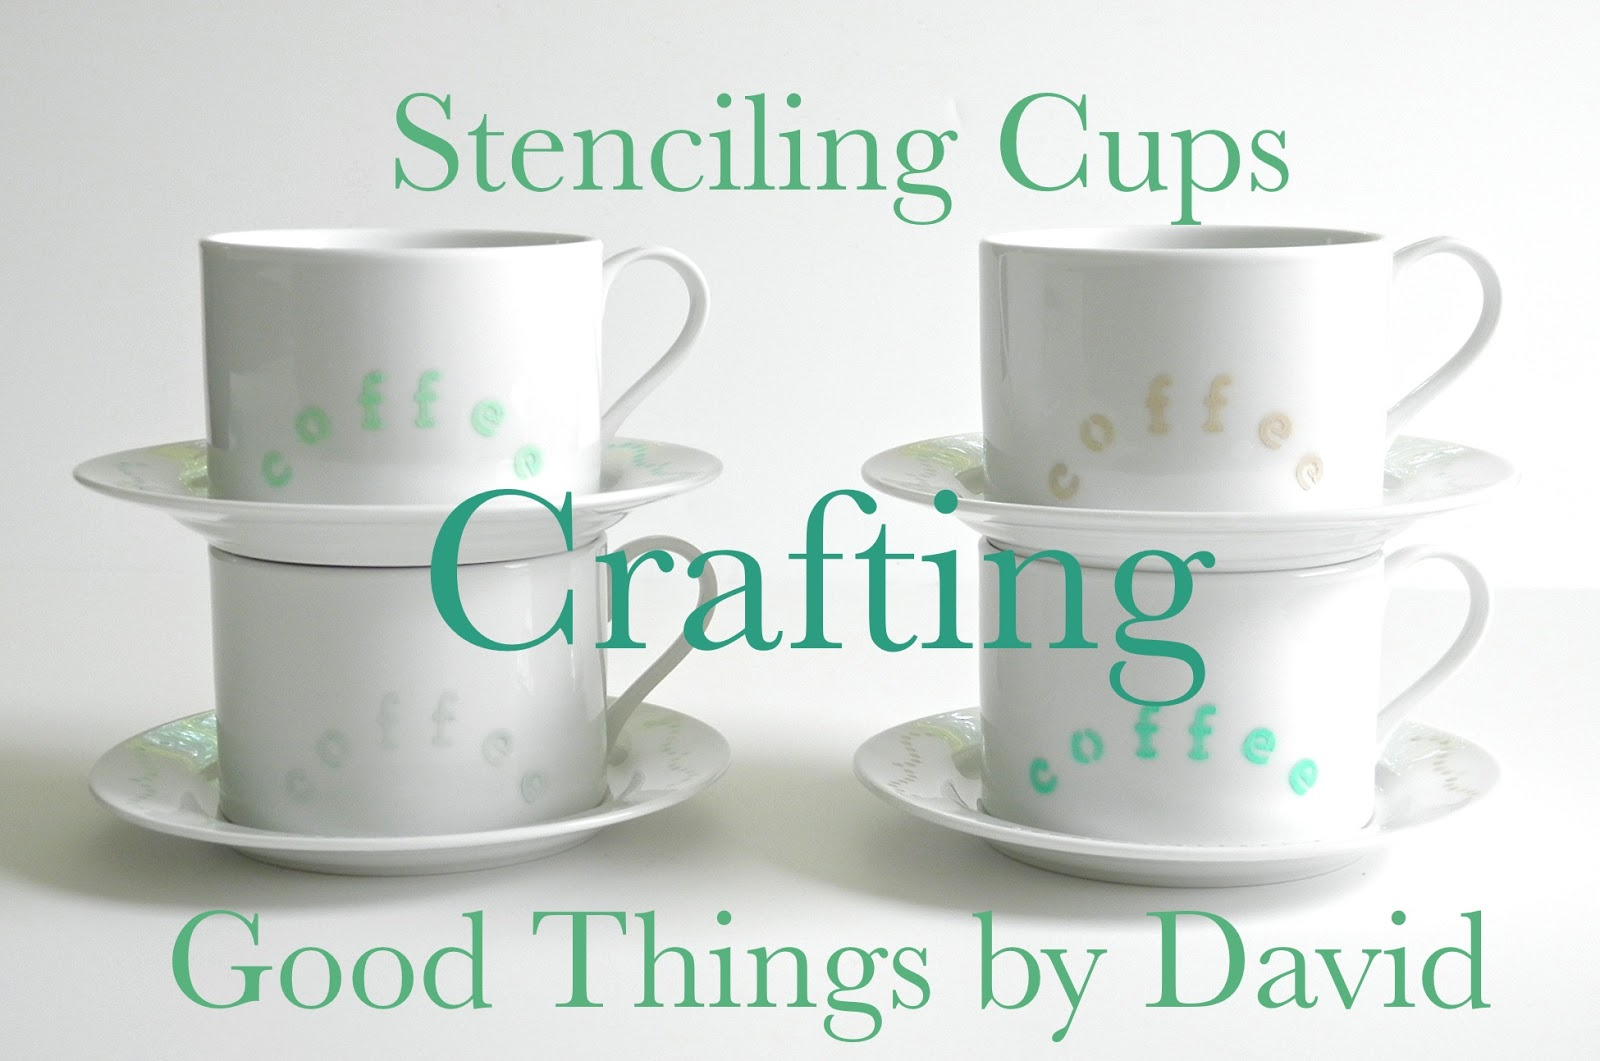 Stenciling Cups